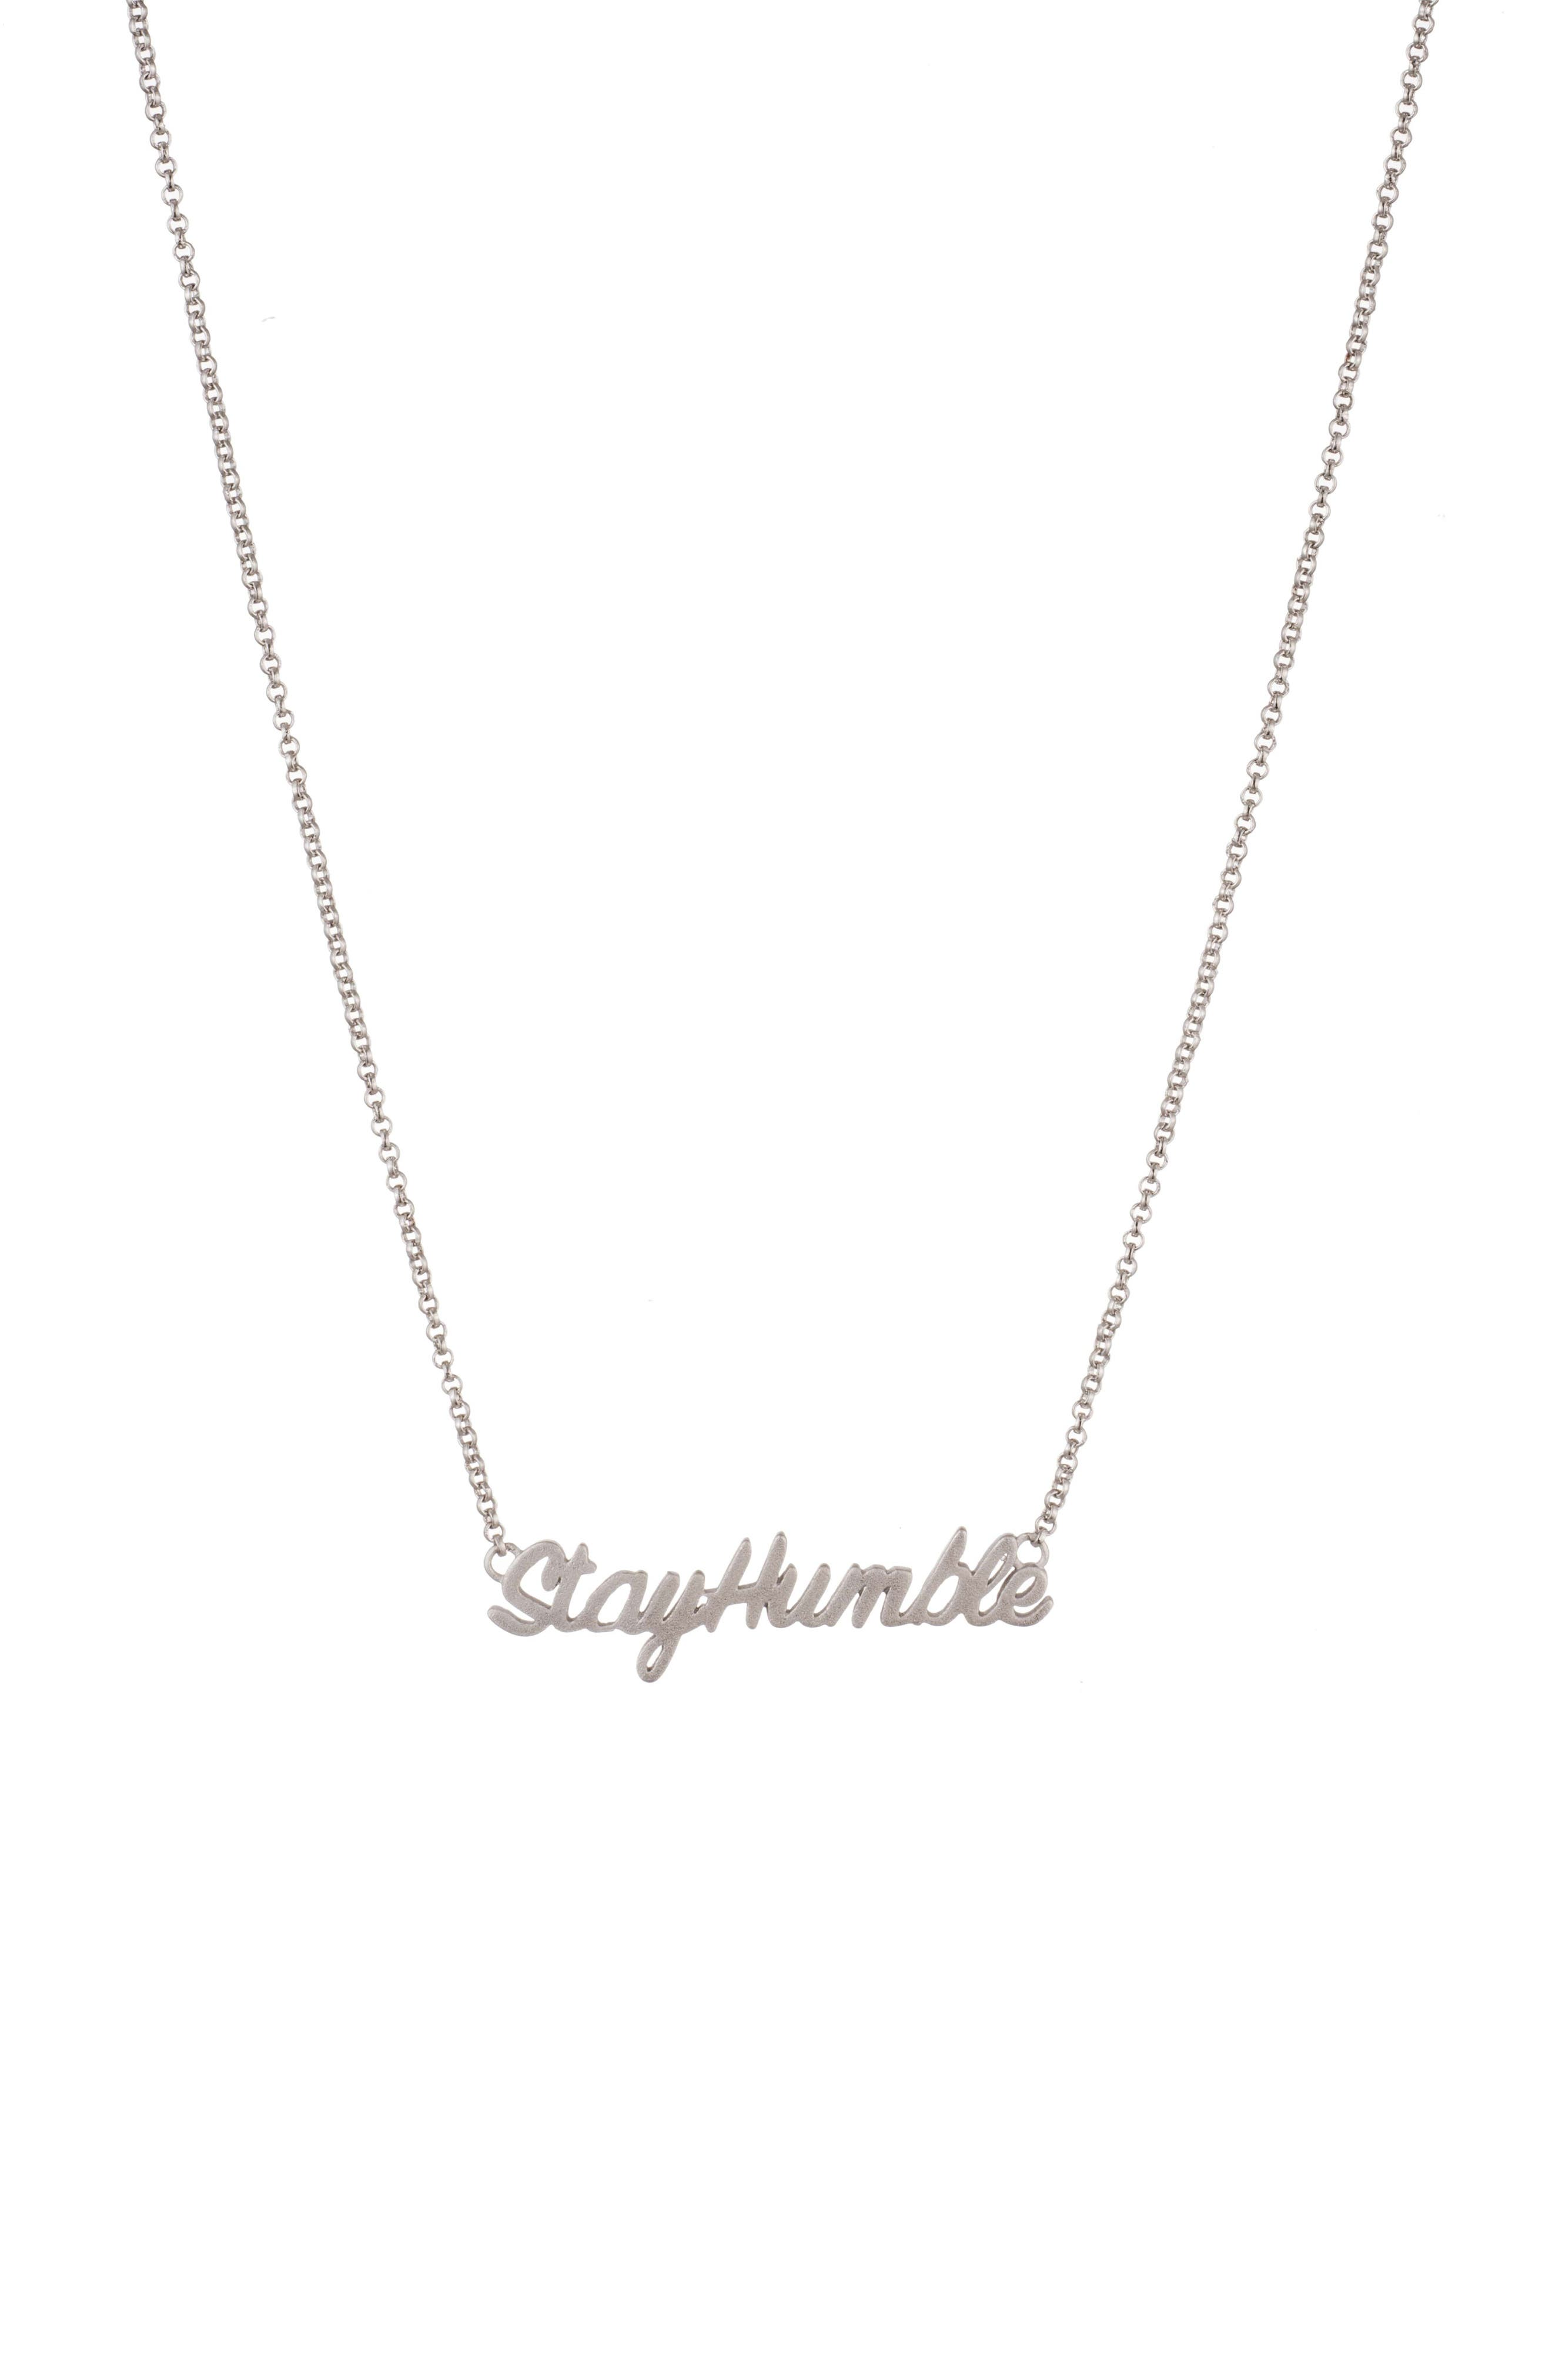 Stay Humble Necklace,                         Main,                         color,